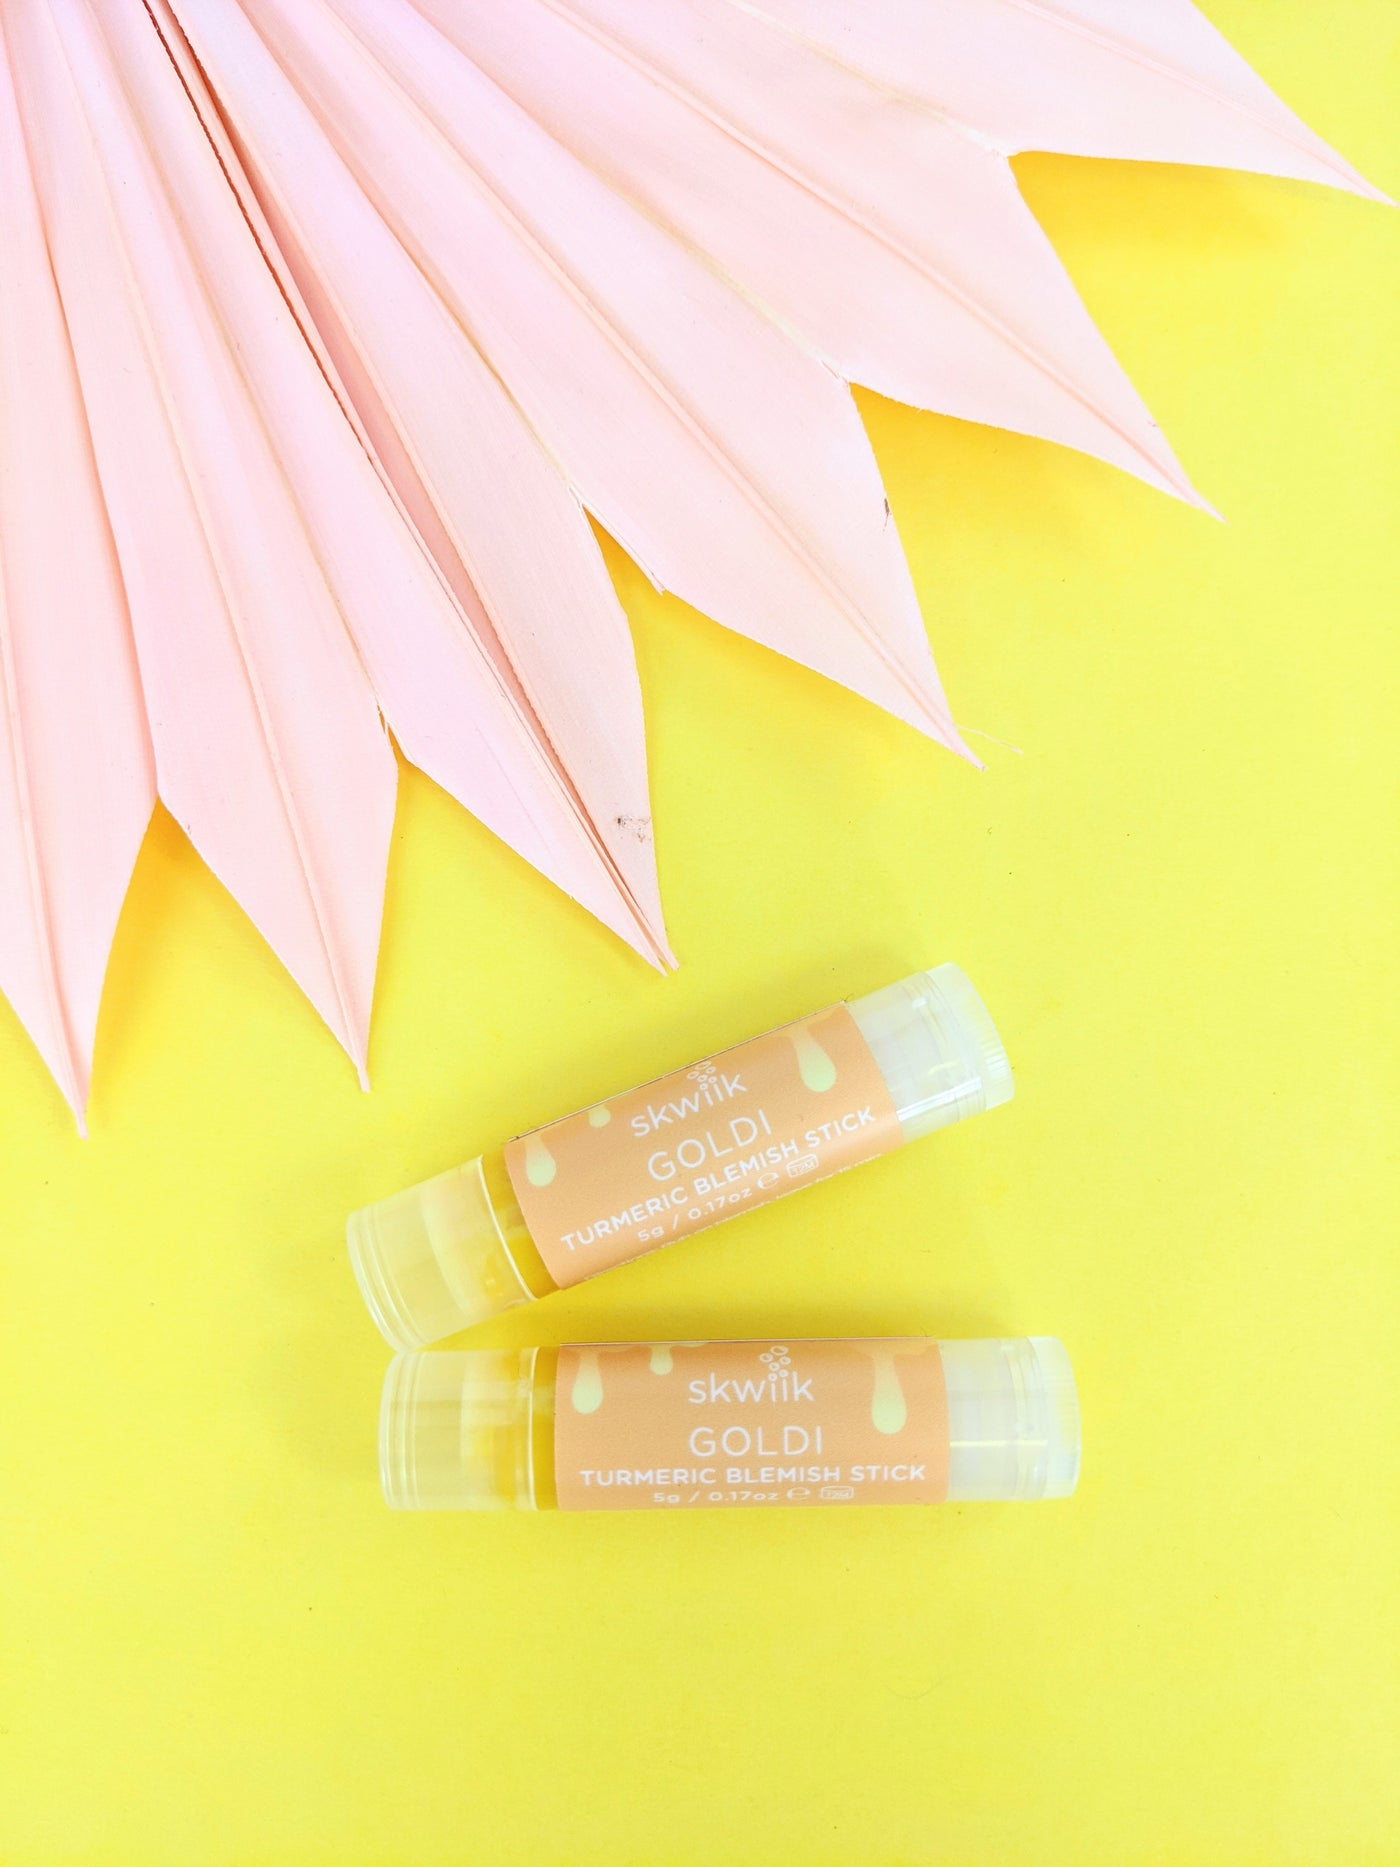 Goldi turmeric blemish stick by Skwiik available at Local Assembly